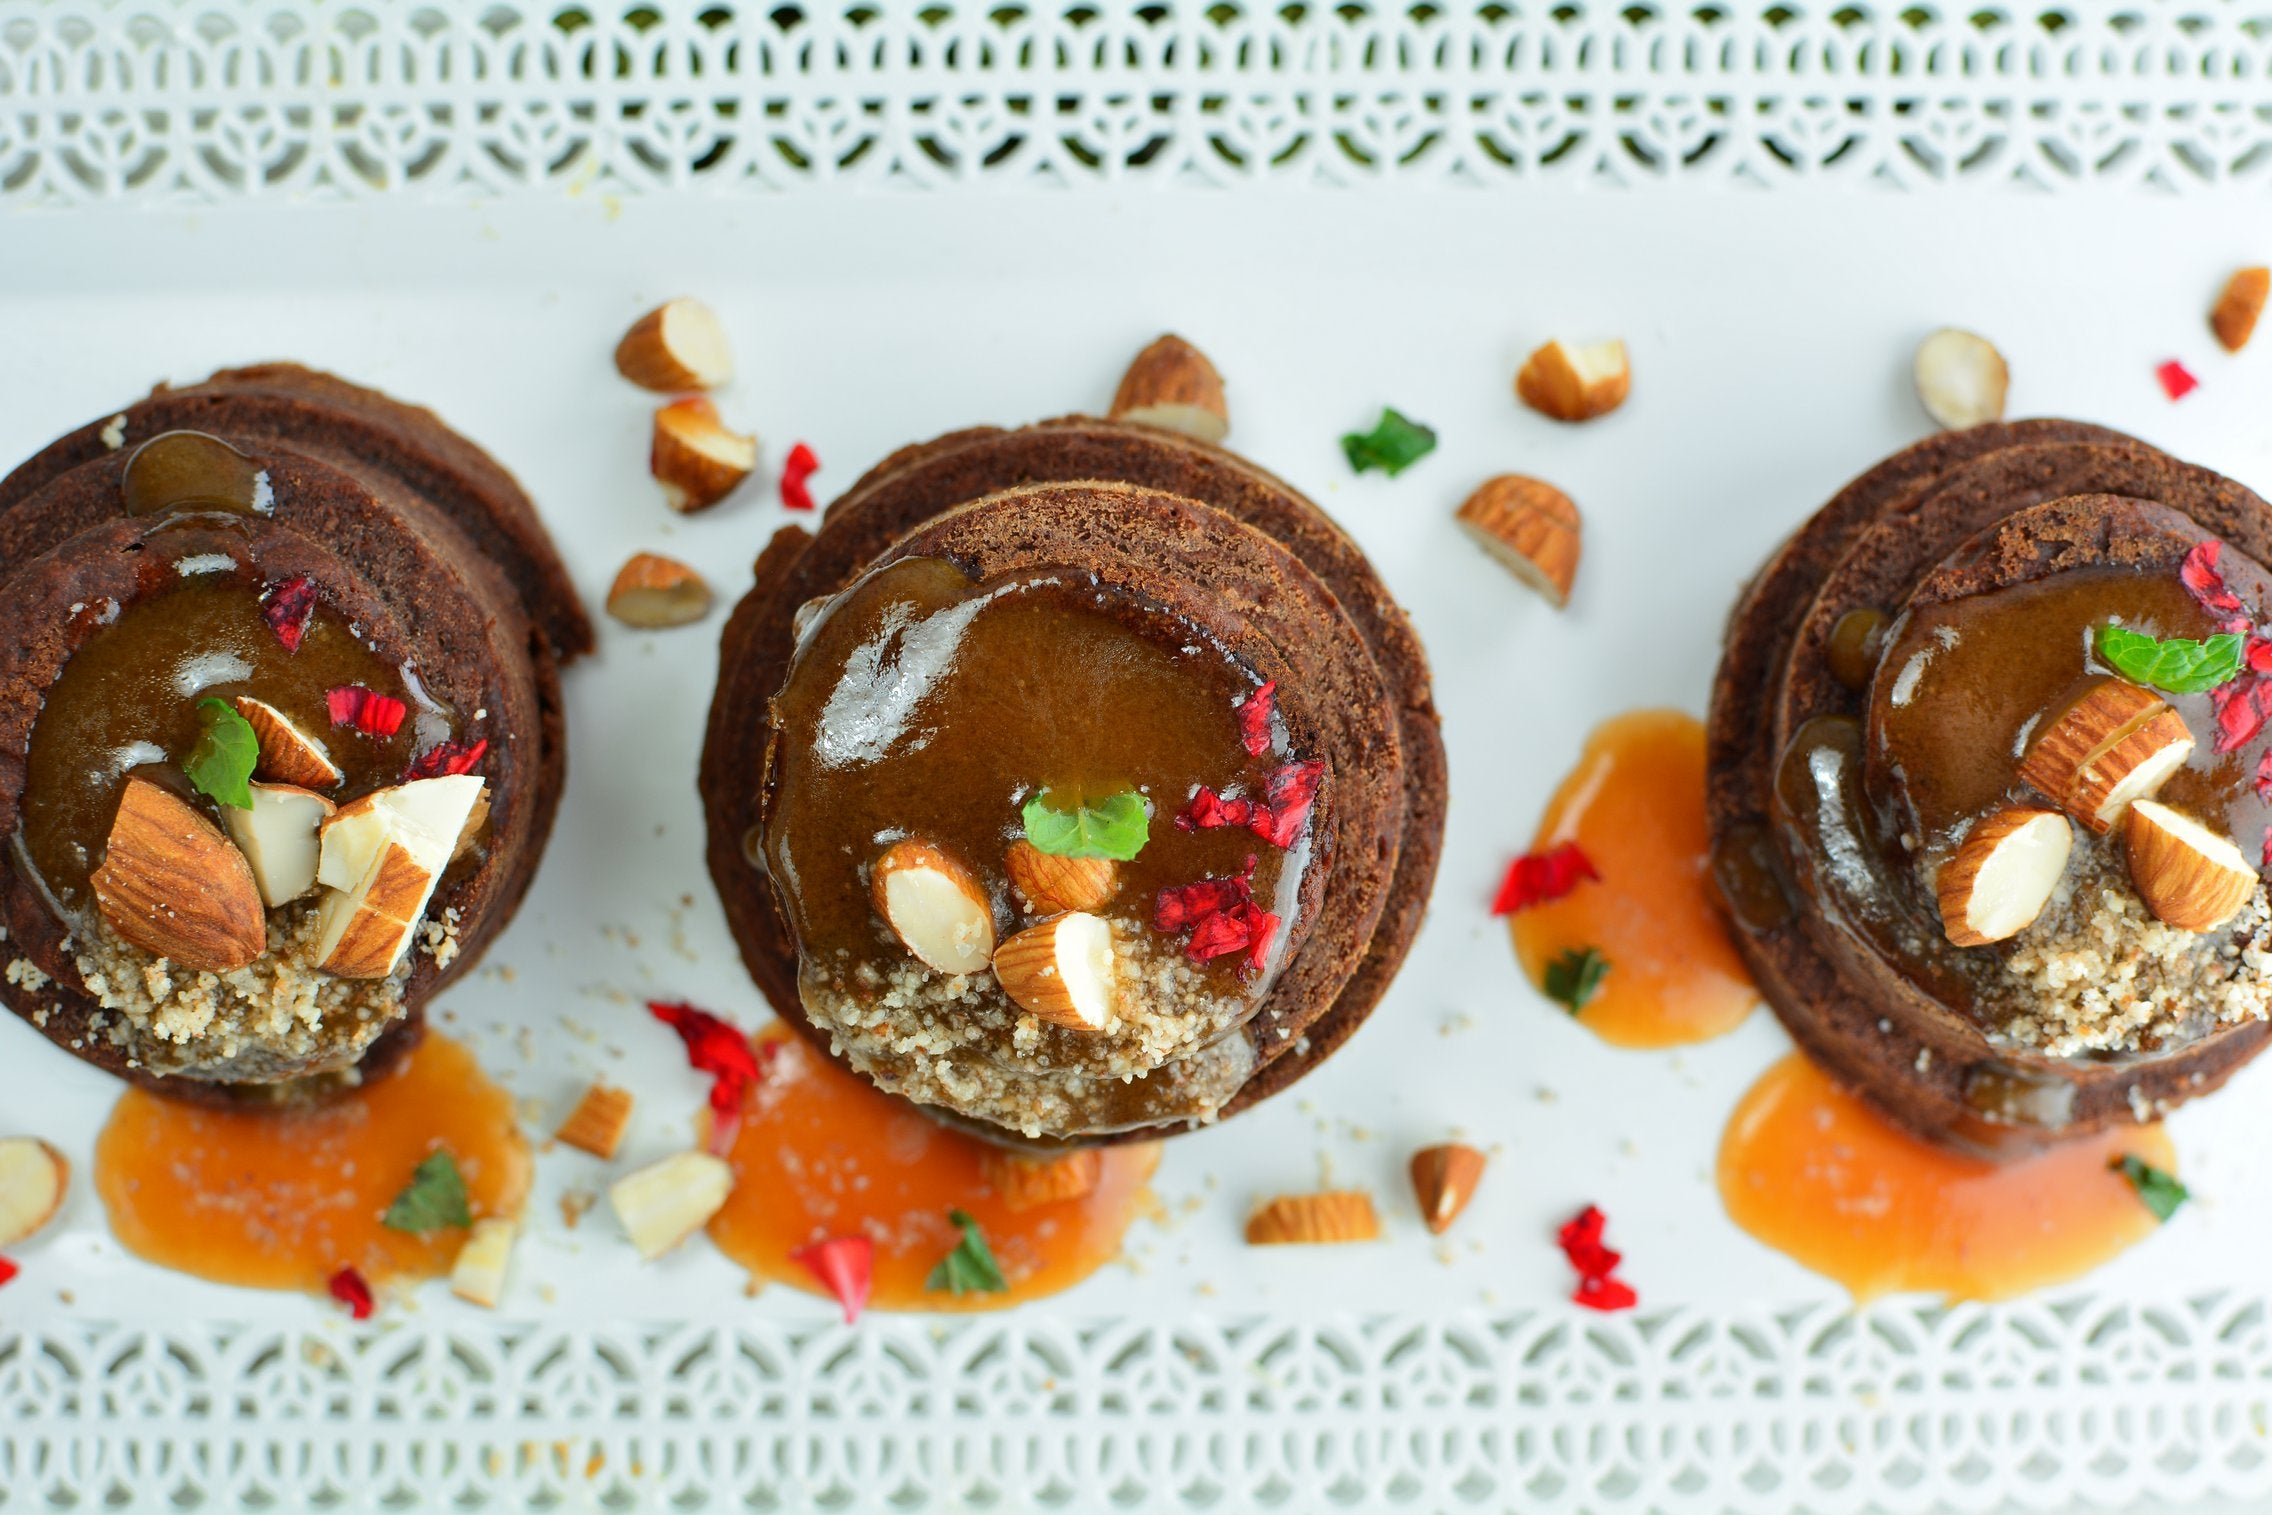 Maca Banana Chocolate Cakes with Caramel Sauce